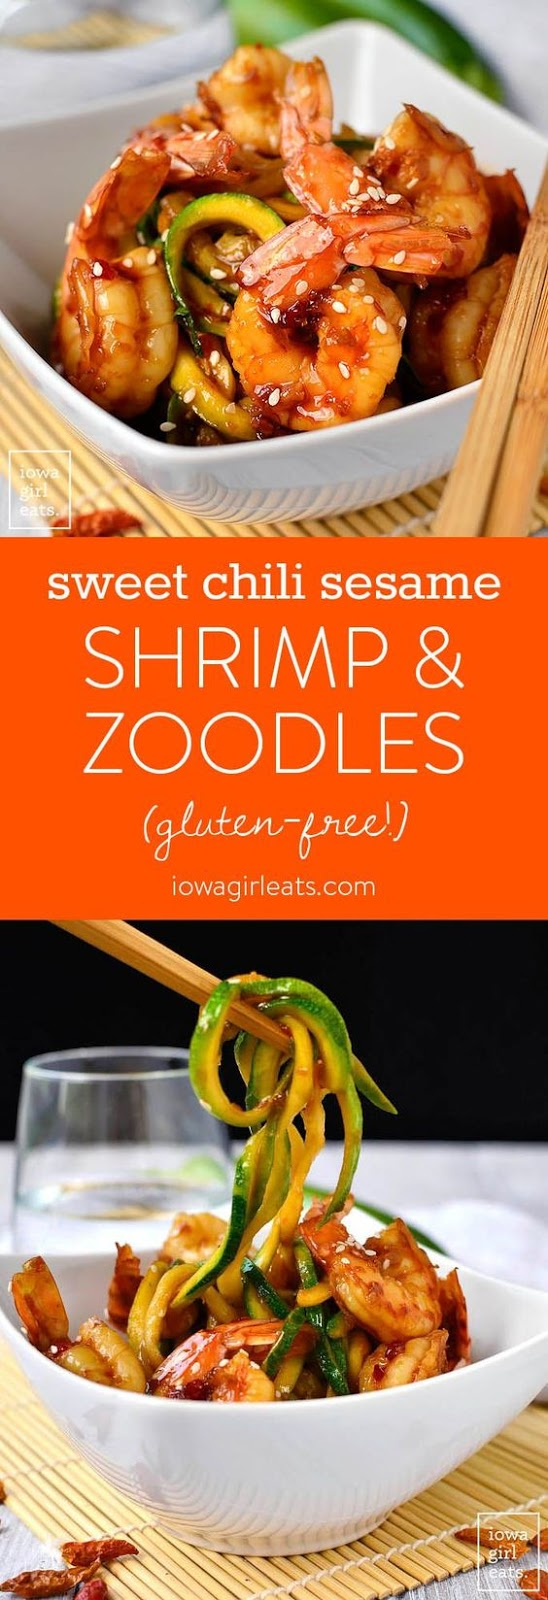 Sweet Chili Sesame Shrimp and Zoodles